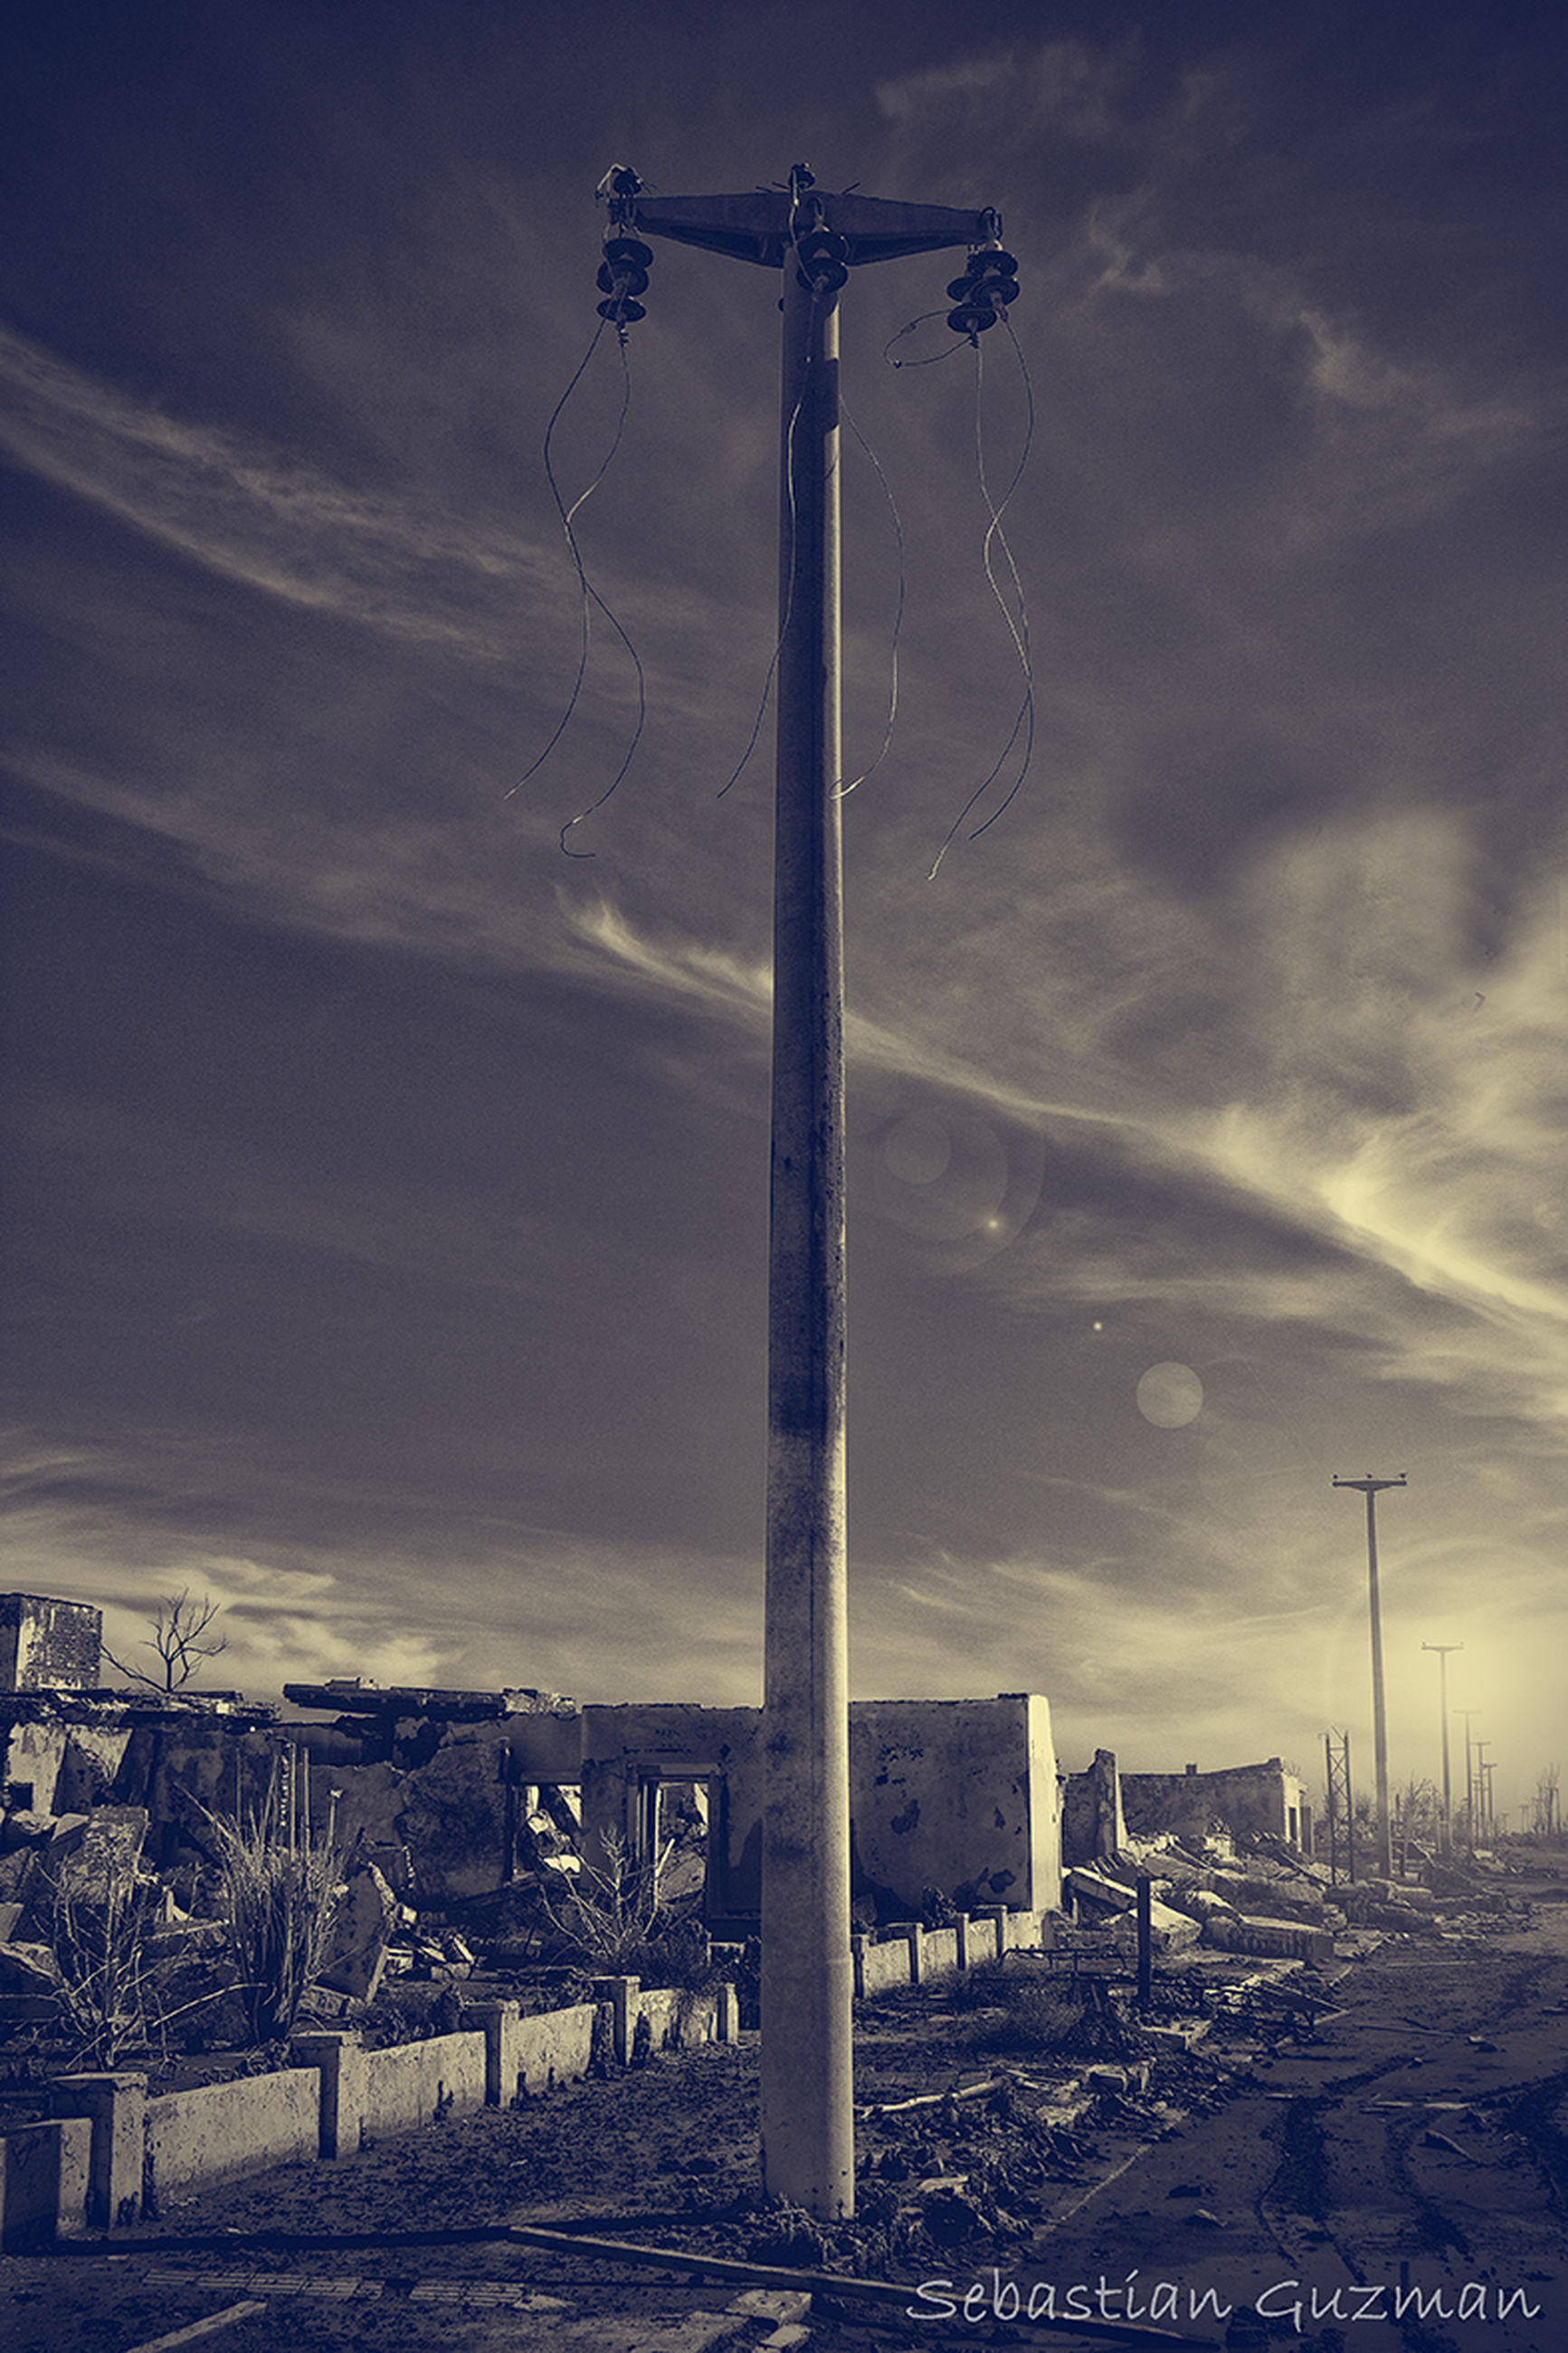 sky, cloud - sky, built structure, architecture, building exterior, cloudy, fuel and power generation, communication, weather, low angle view, outdoors, street light, no people, overcast, cloud, day, pole, dusk, technology, electricity